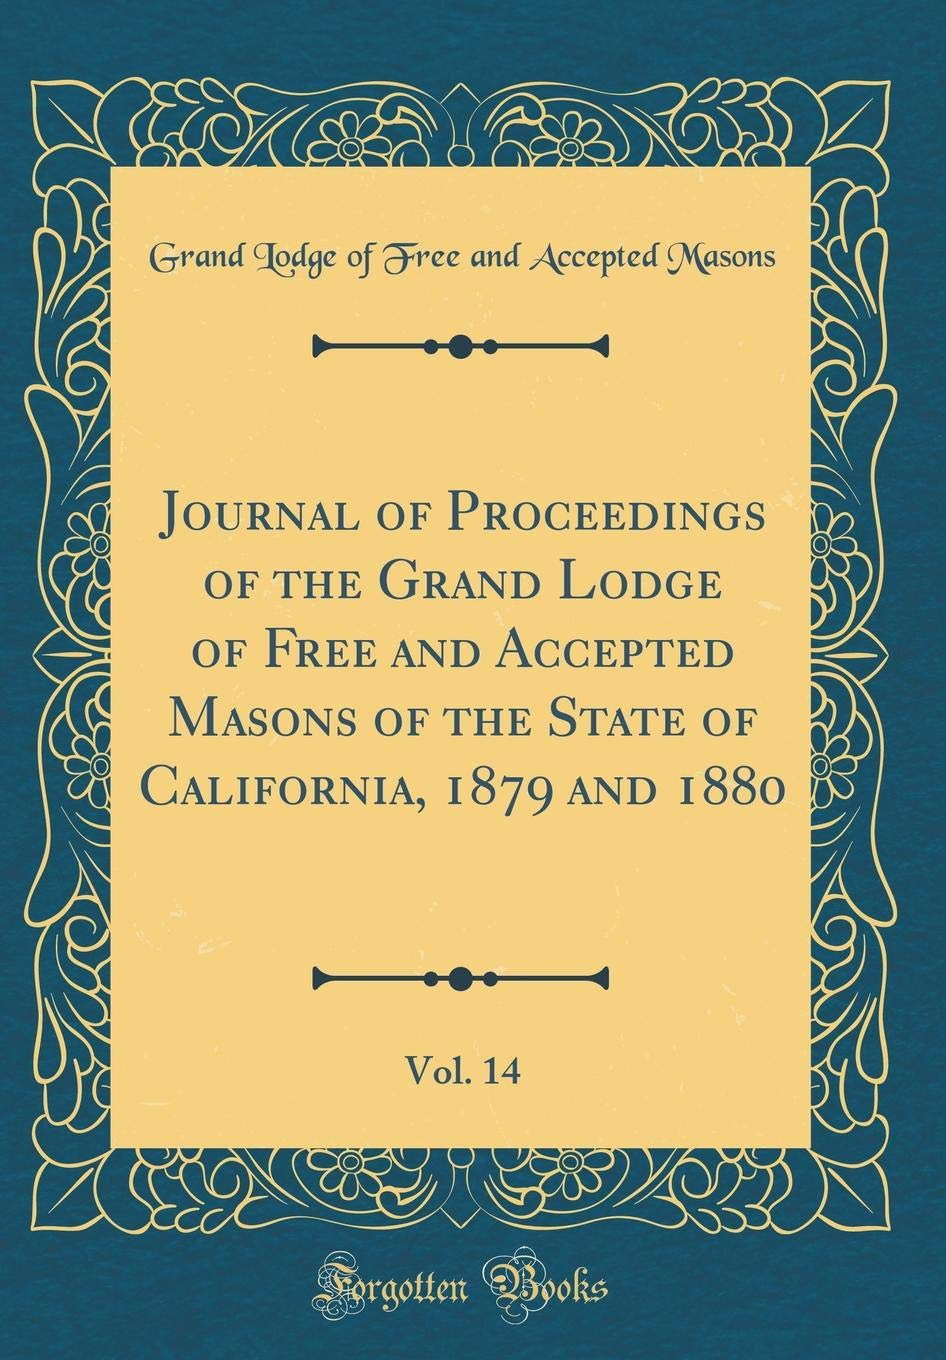 Journal of Proceedings of the Grand Lodge of Free and Accepted Masons of the State of California, 1879 and 1880, Vol. 14 (Classic Reprint) PDF